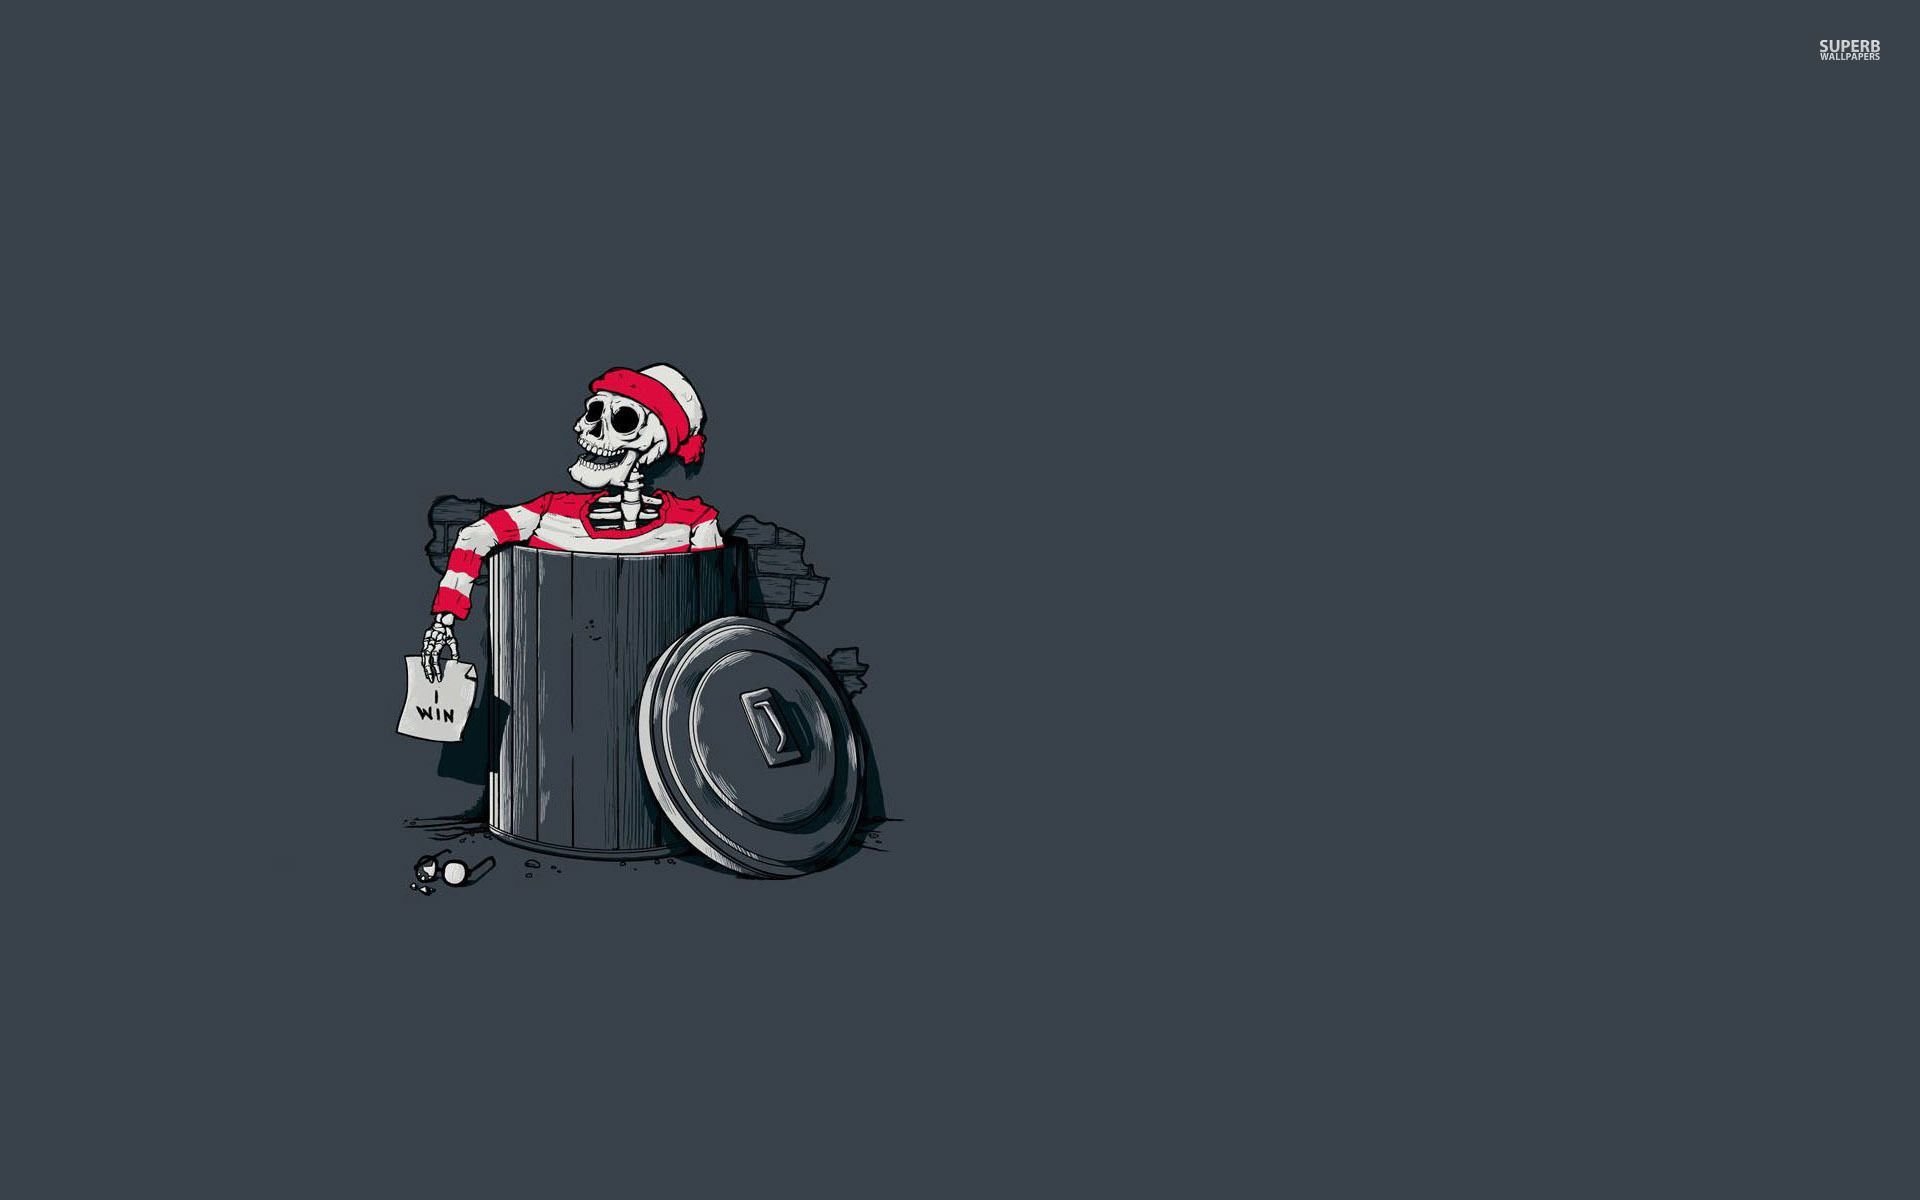 Waldo wins wallpaper   Funny wallpapers 1920x1200